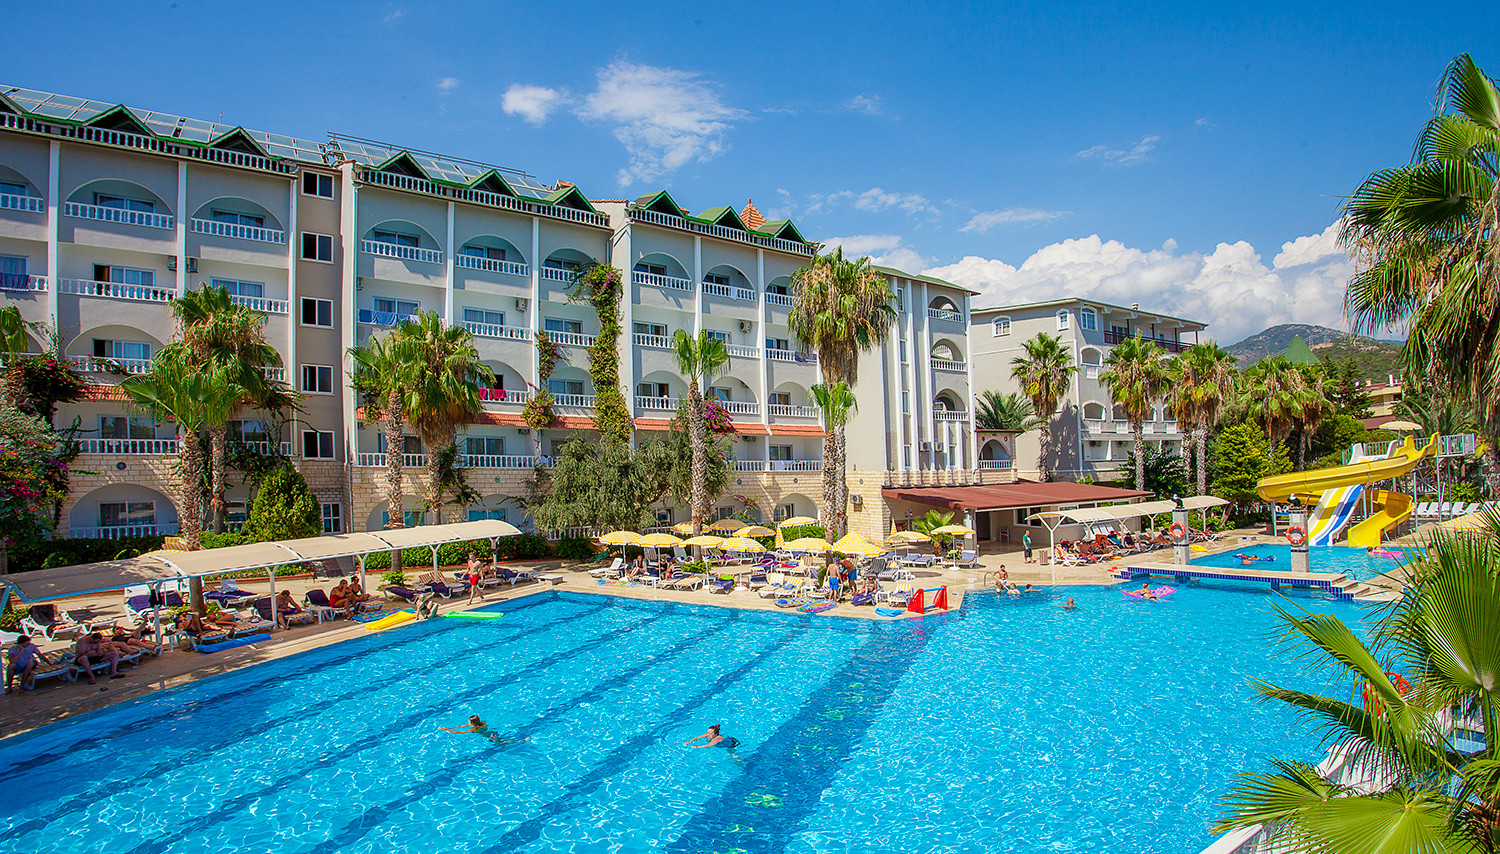 Kemal Bay Resort (Antalya, Türgi)